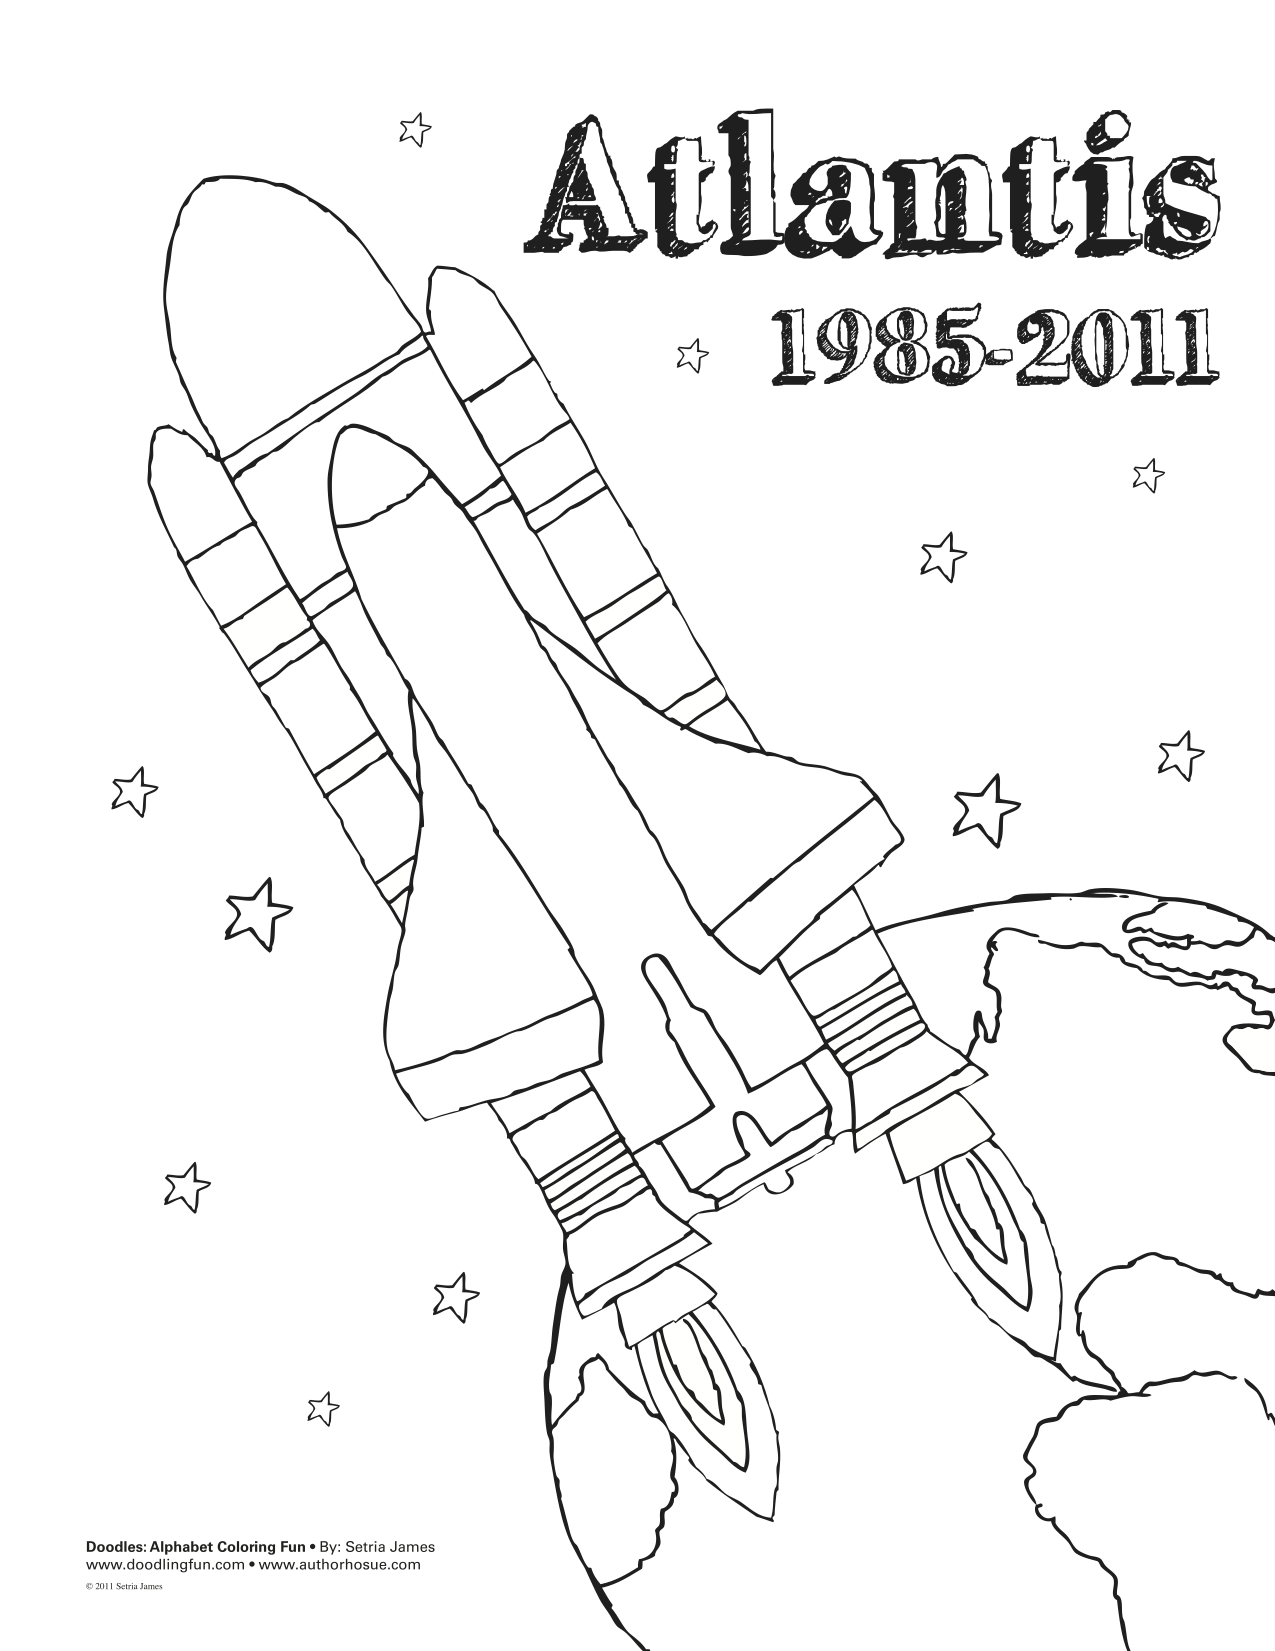 space shuttle coloring pages - Space Shuttle Coloring Pages 2